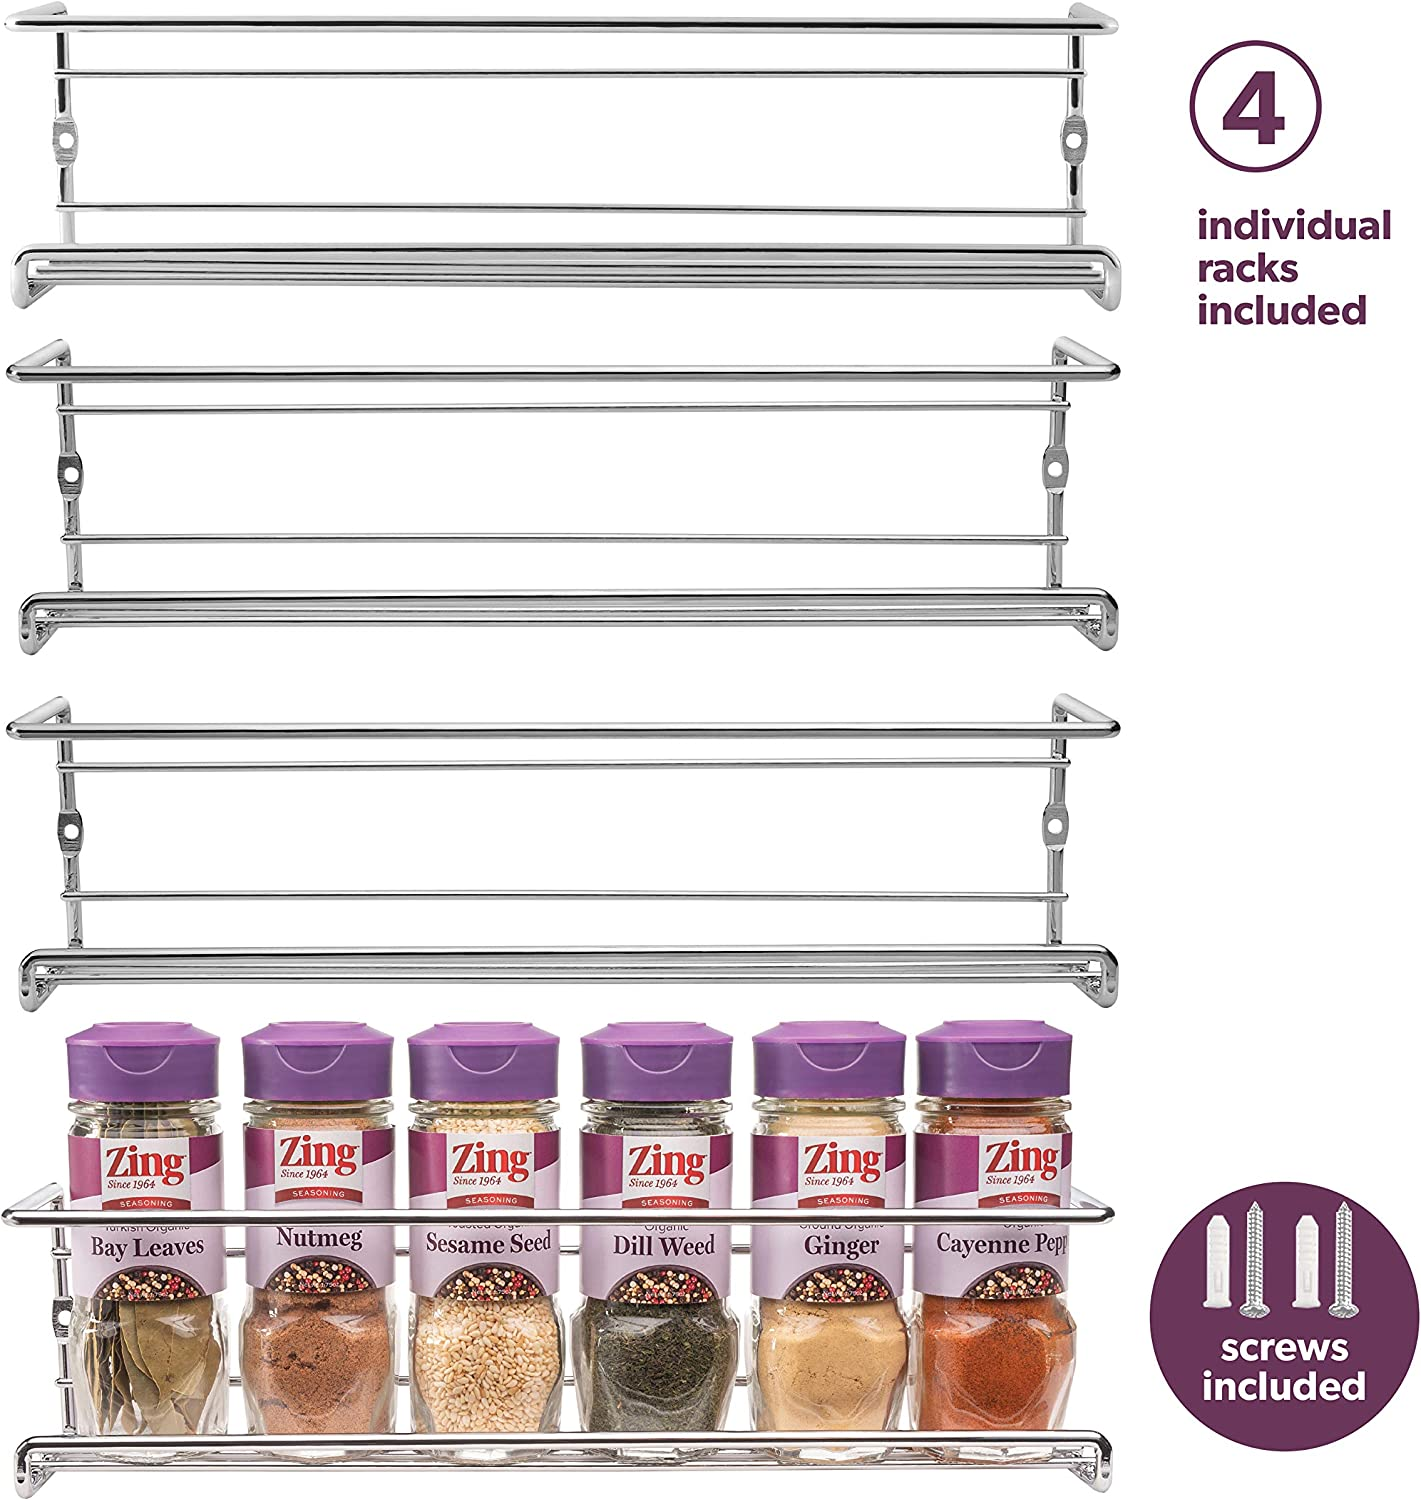 Spice Rack Wall Mount, Pantry Cabinet Door Organizer by Mindspace - Set of 4 Hanging Spice & Seasoning Racks Kitchen Storage Organizer | The Wire Collection, Chrome